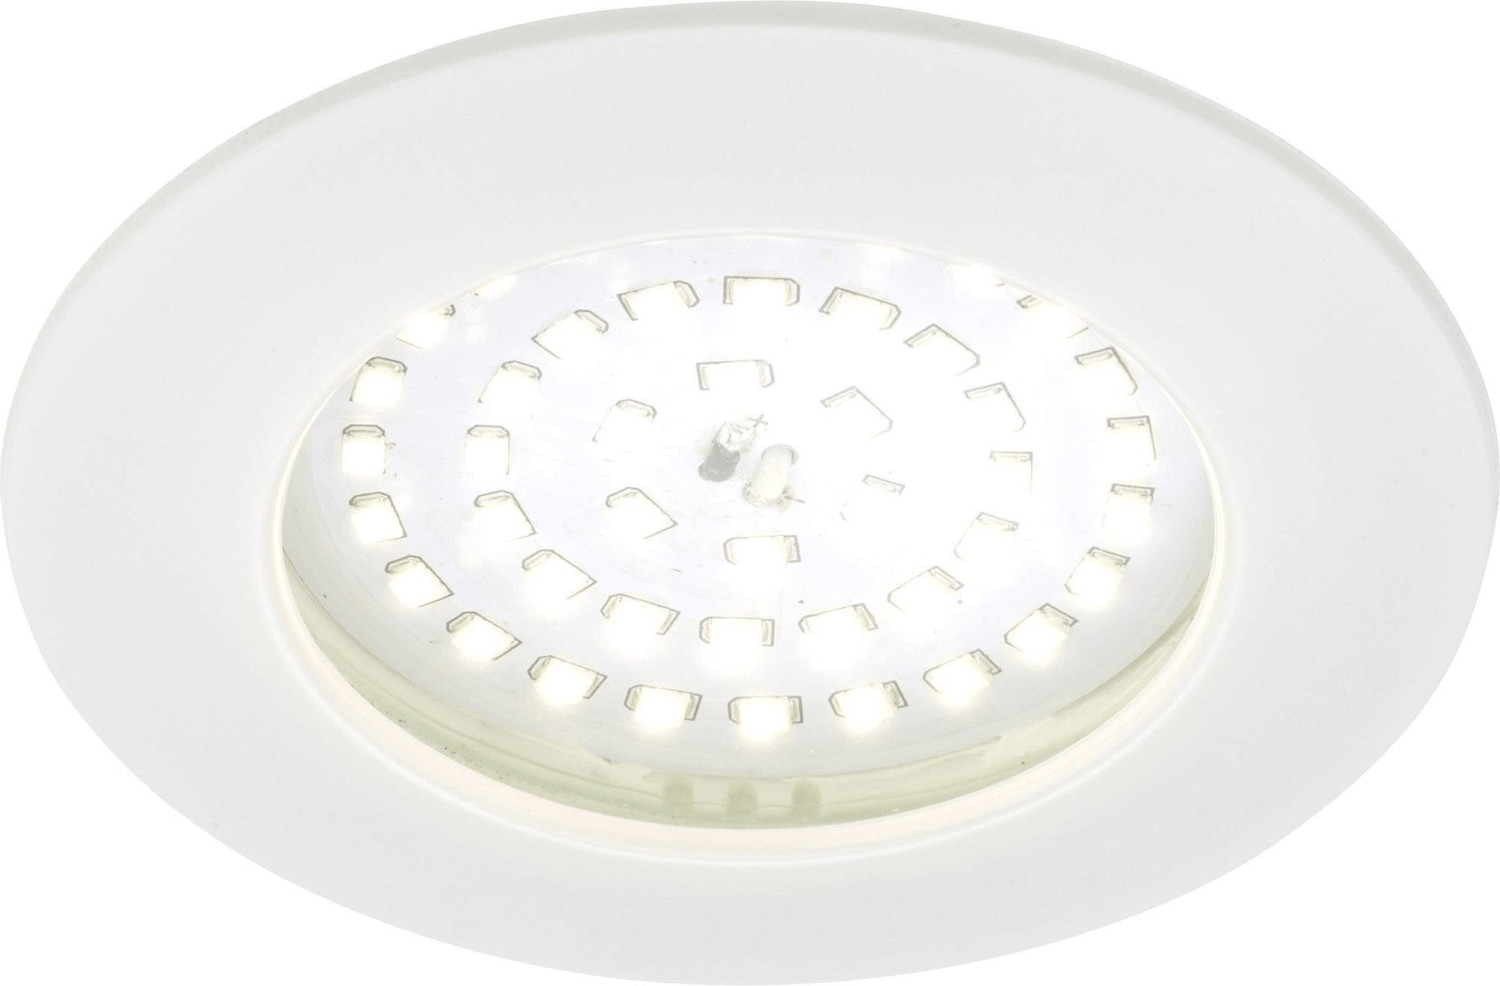 Briloner LED Spots weiß (7233-016)